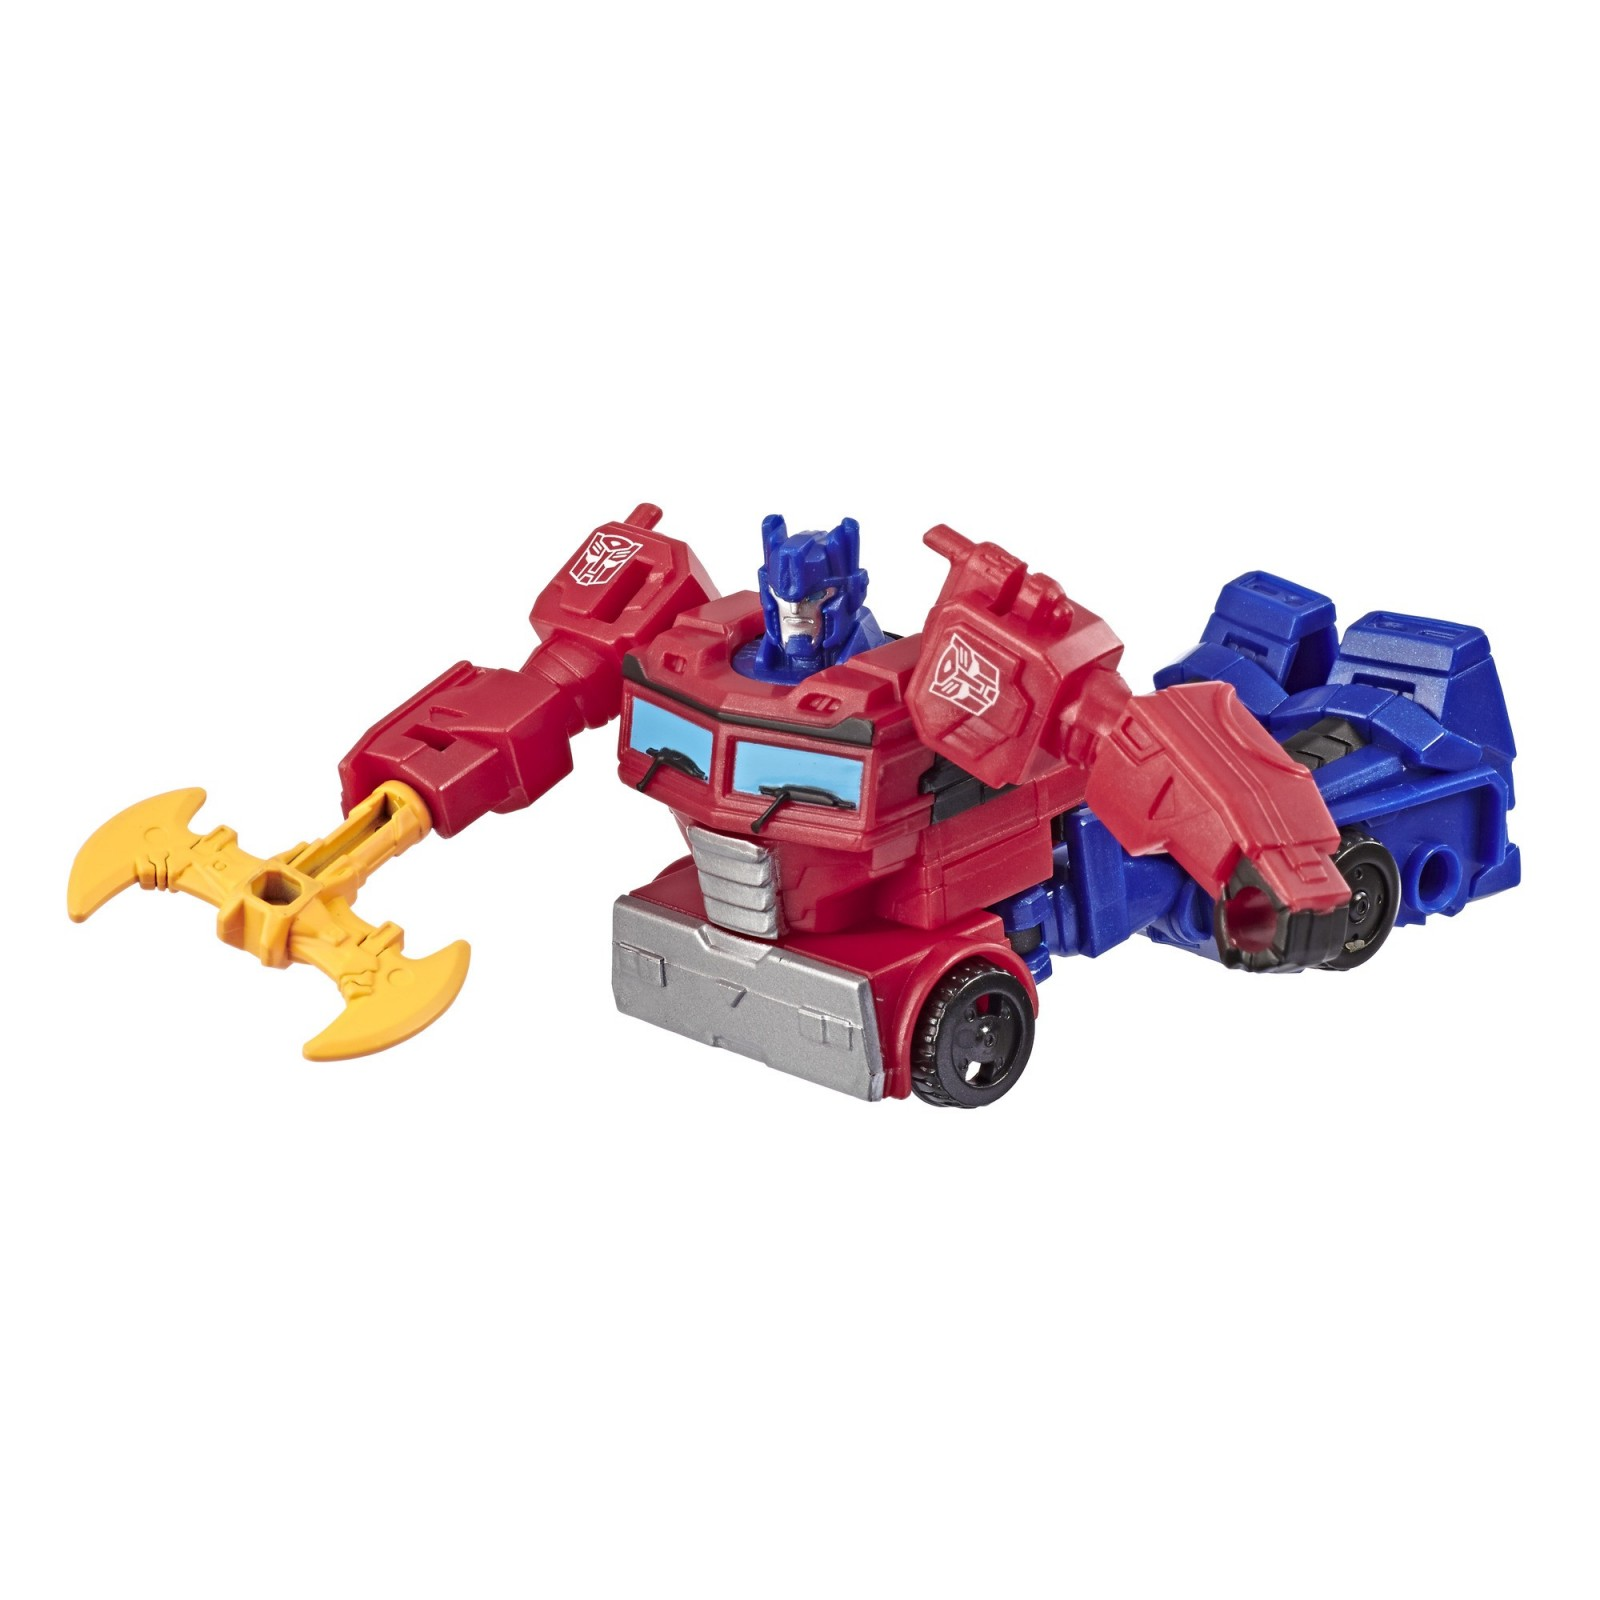 Transformers News: New Images of Scraplet With Battle Damage